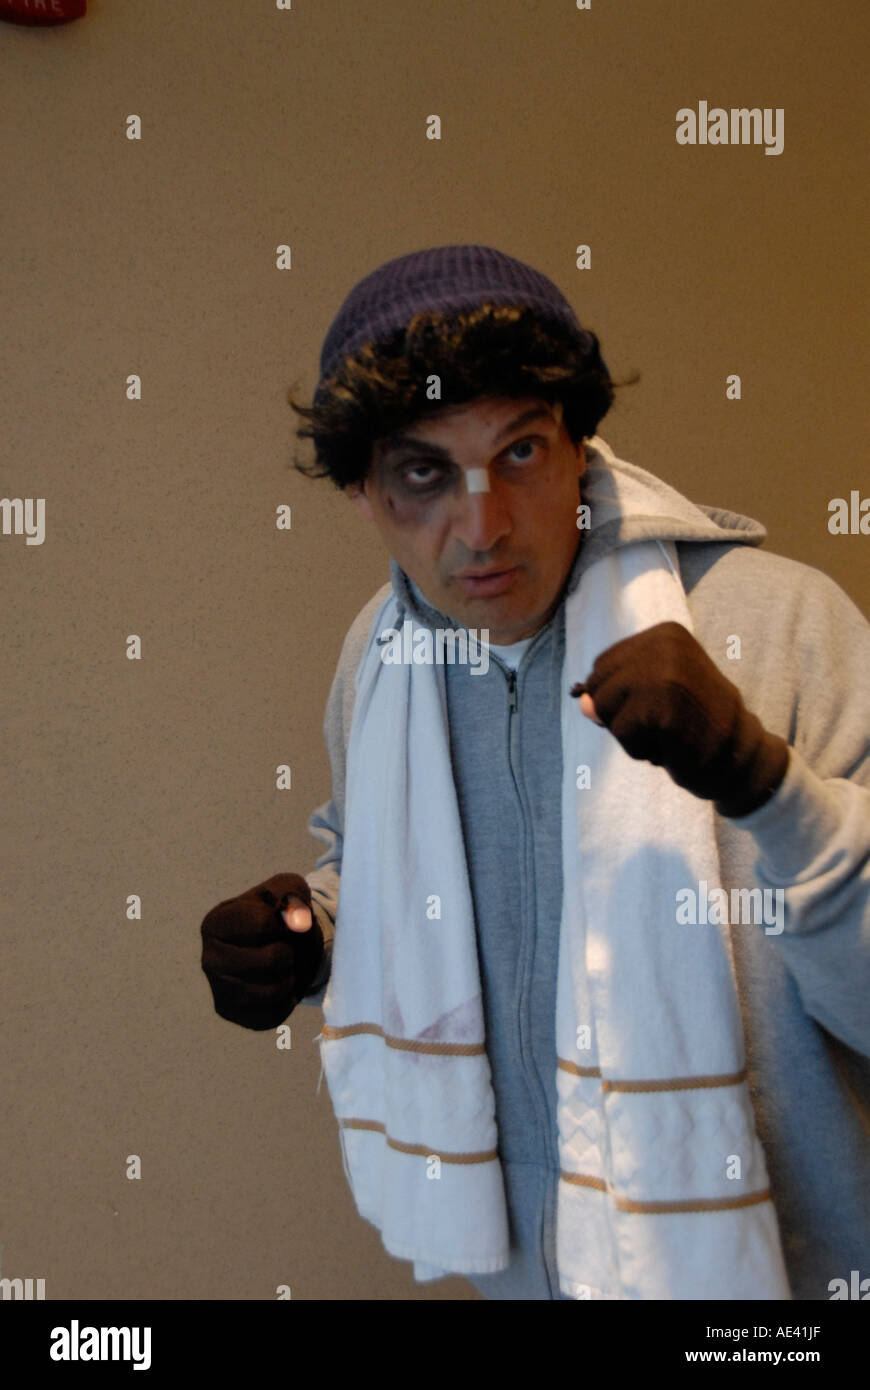 Rocky movie character impersonator mod rel Philadelphia Pennsylvania PA USA - Stock Image